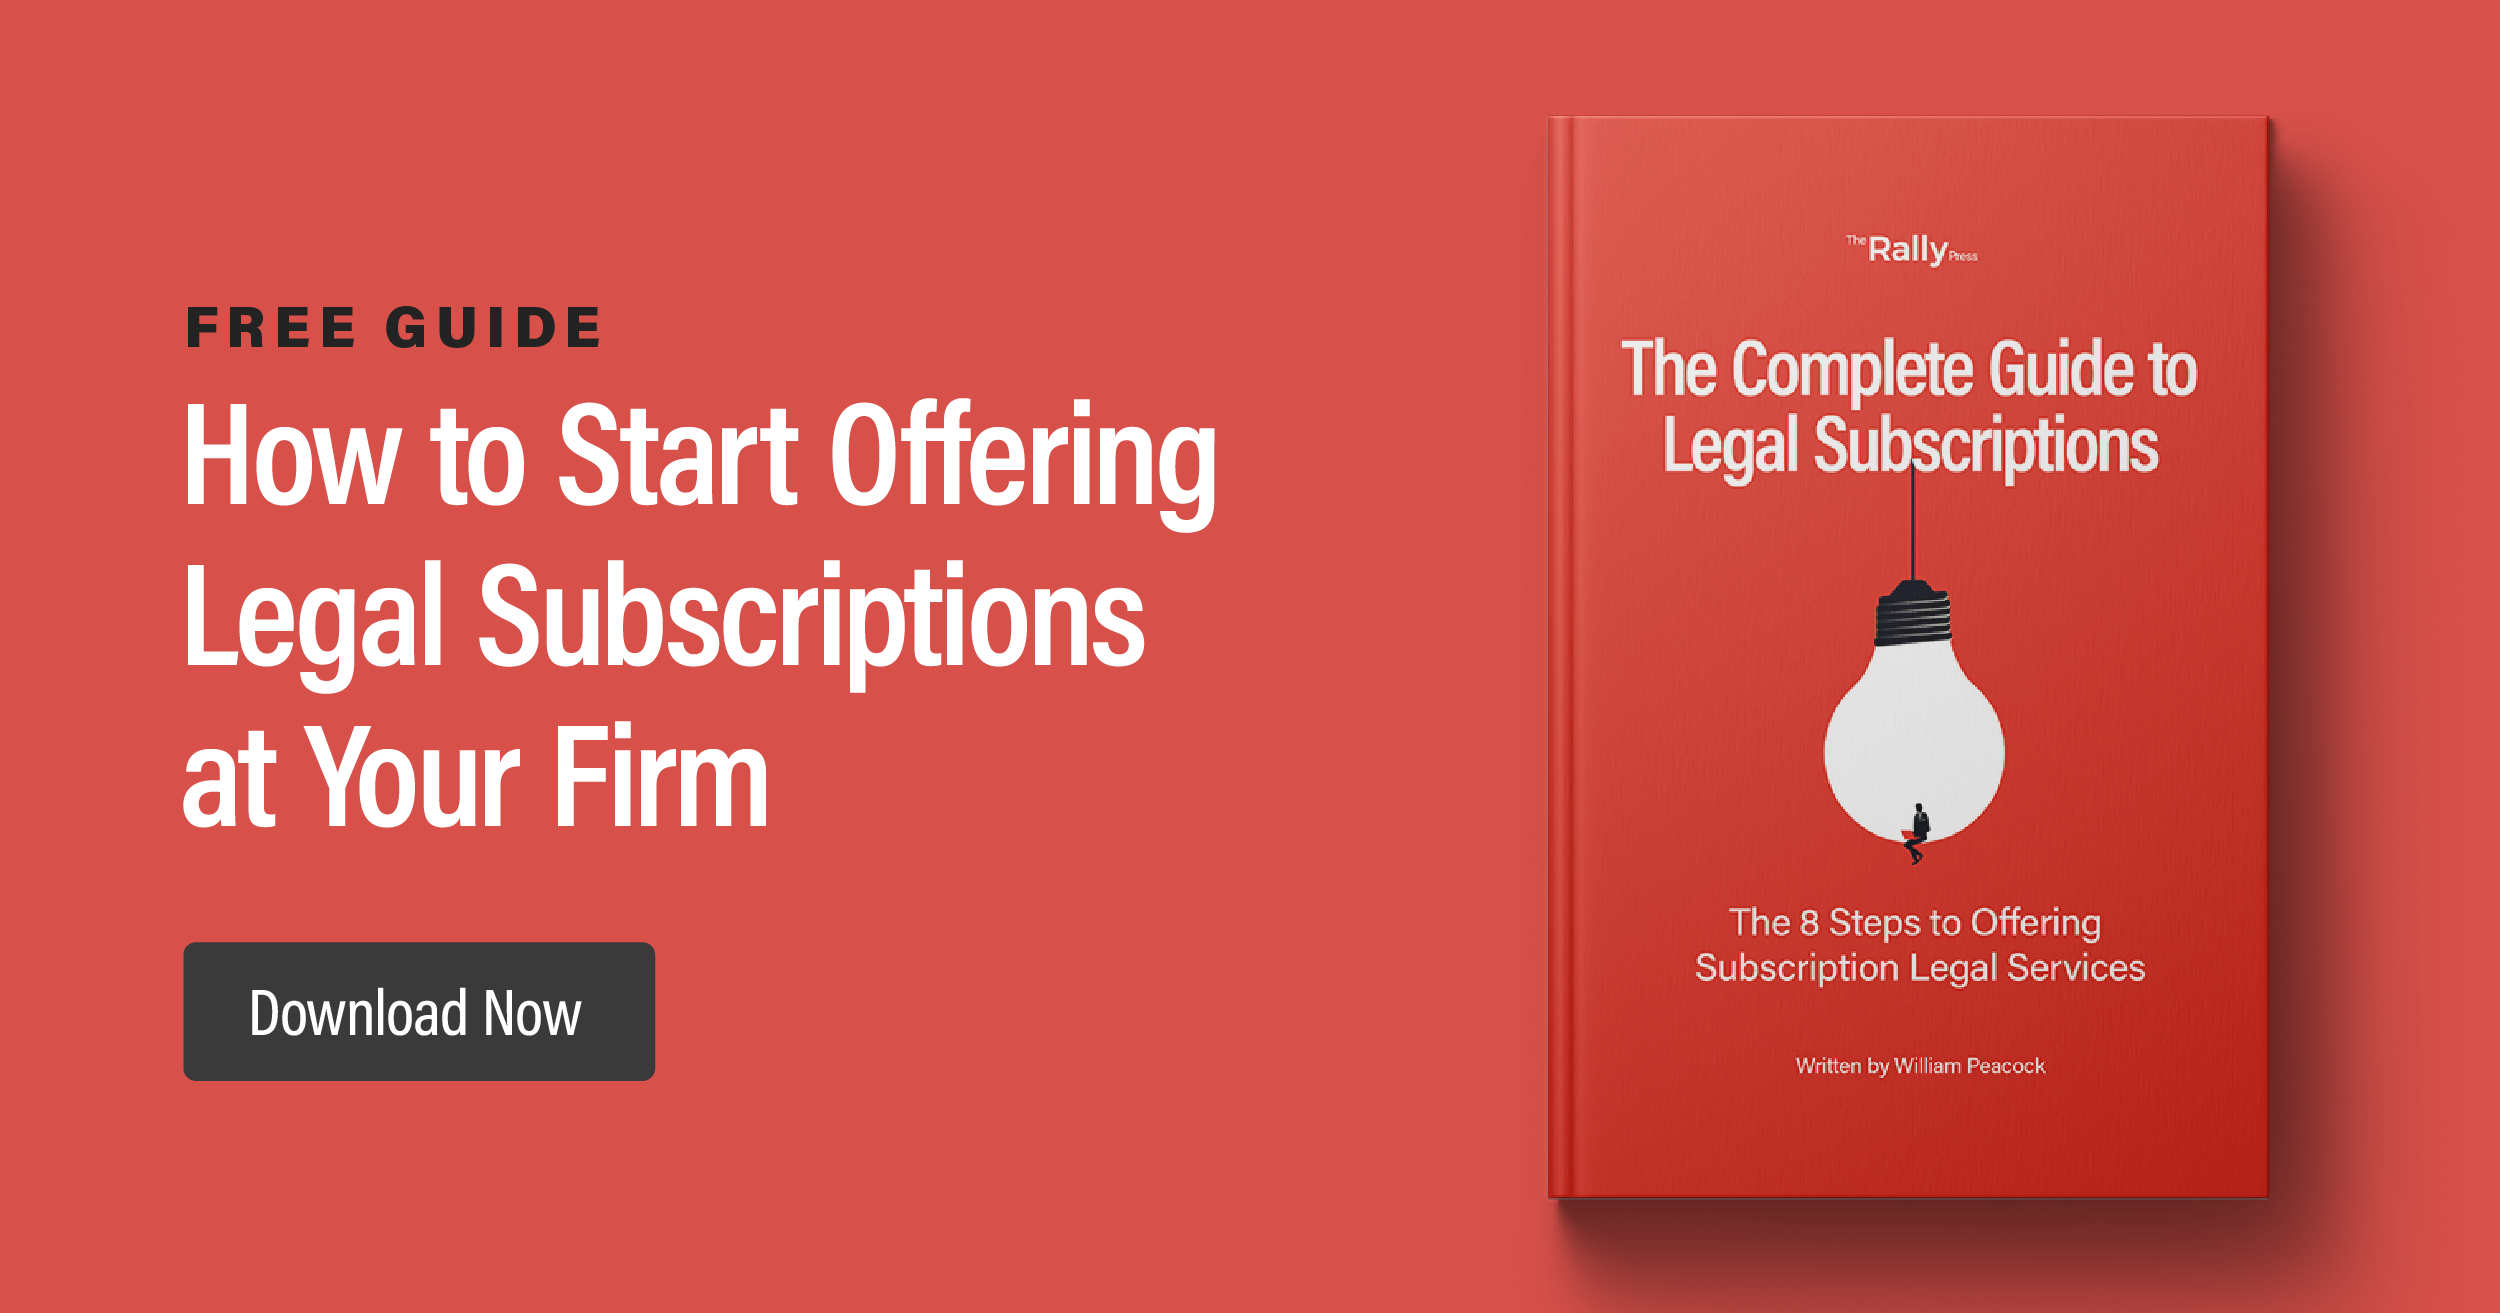 Rally's ebook for lawyers who want to offer subscription legal services at their firm